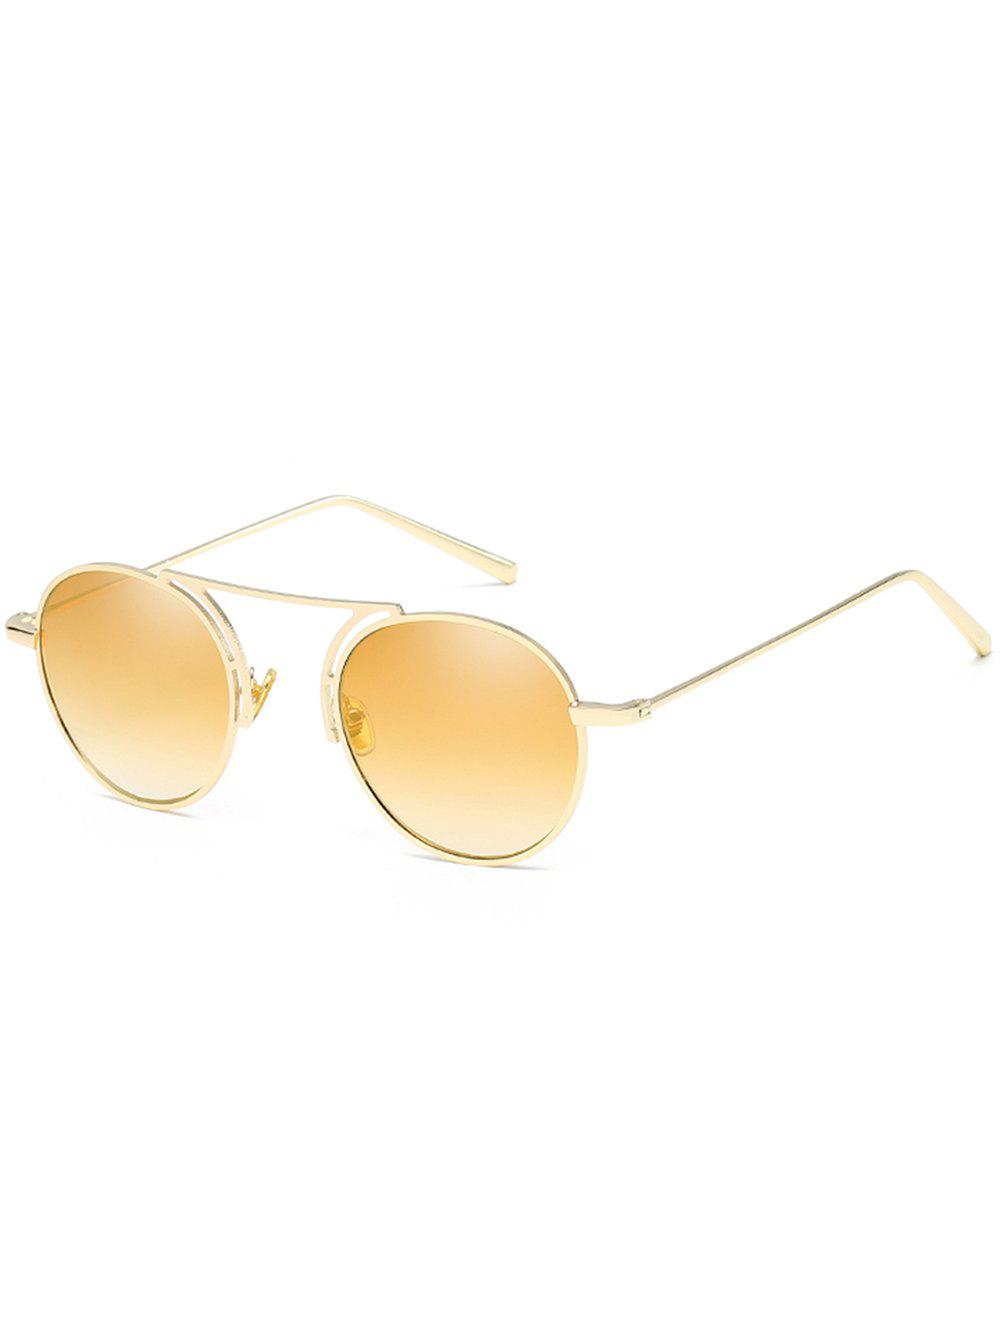 Stylish Thin Metal Frame Oval Sunglasses - CHAMPAGNE GOLD